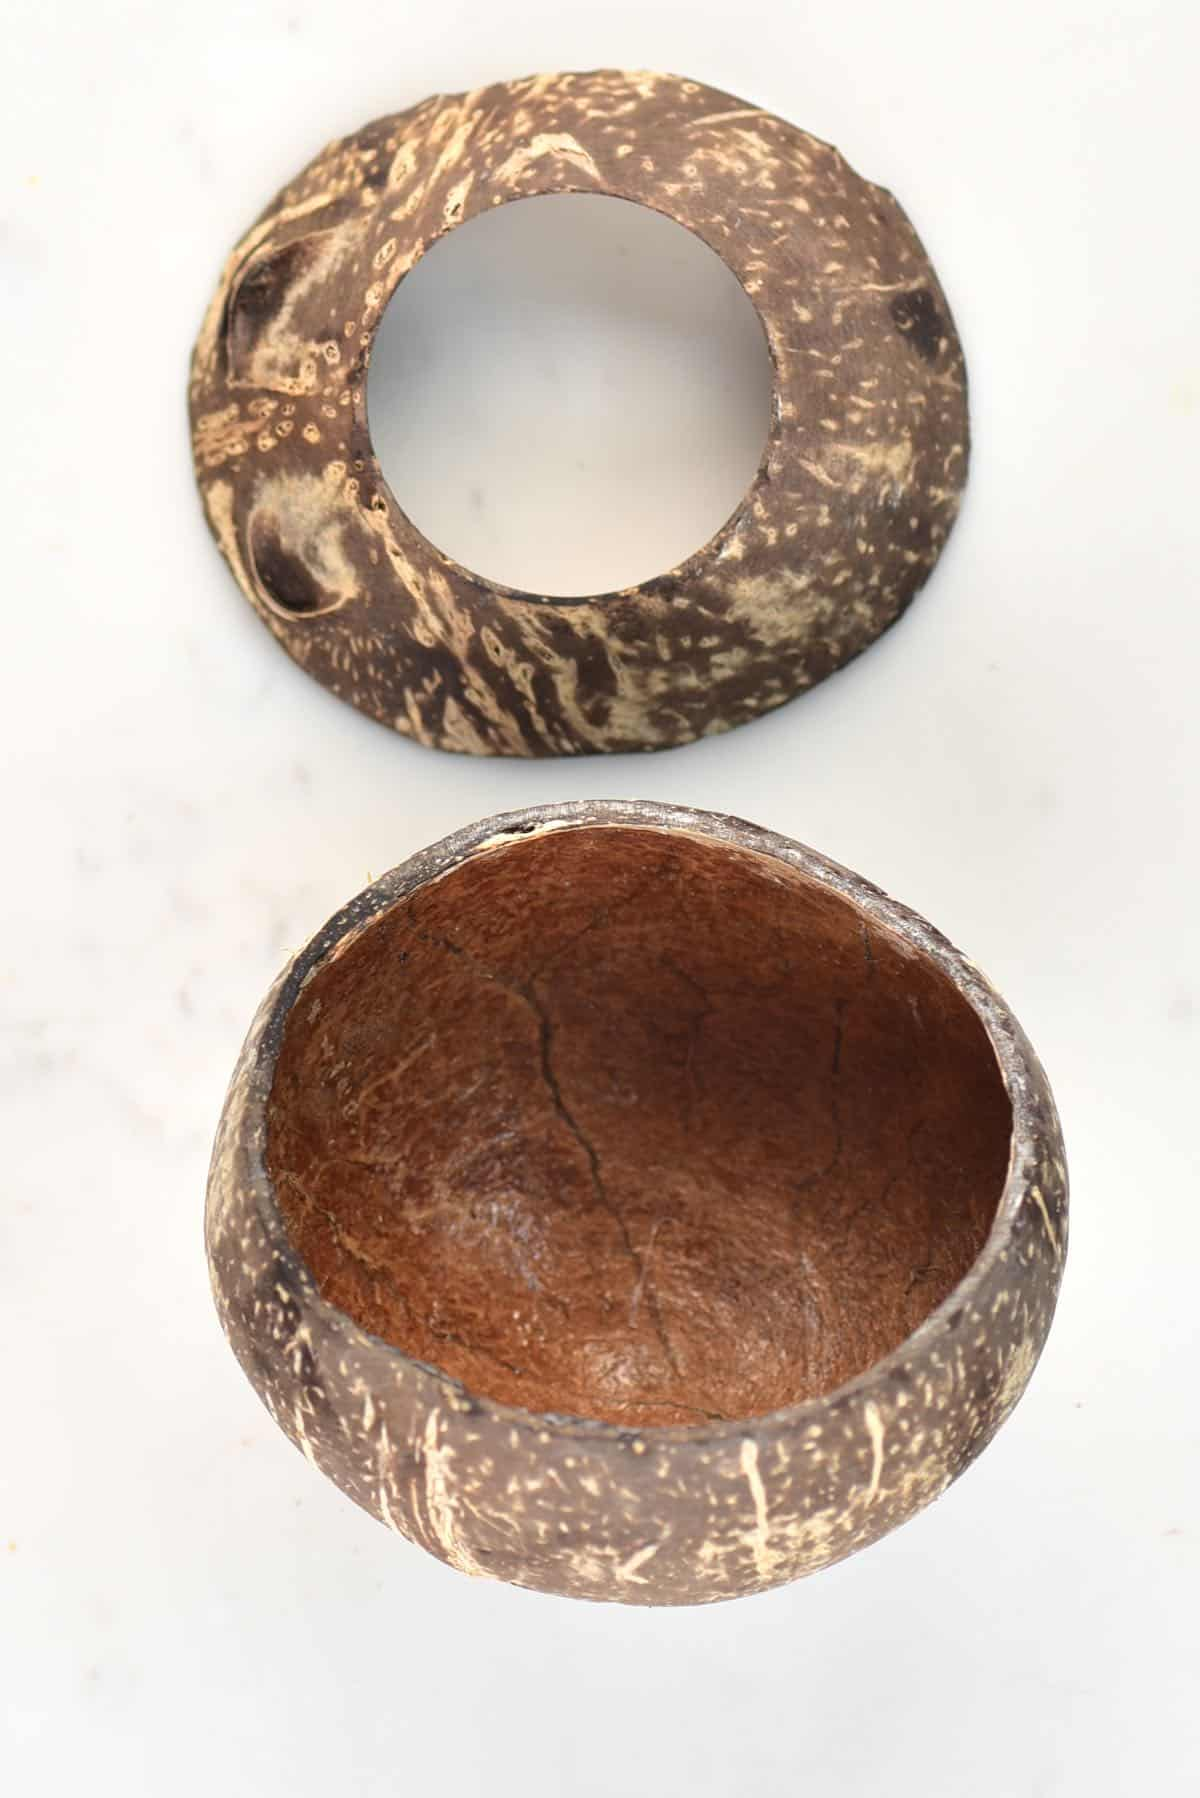 A coconut shell bowl on a flat white surface